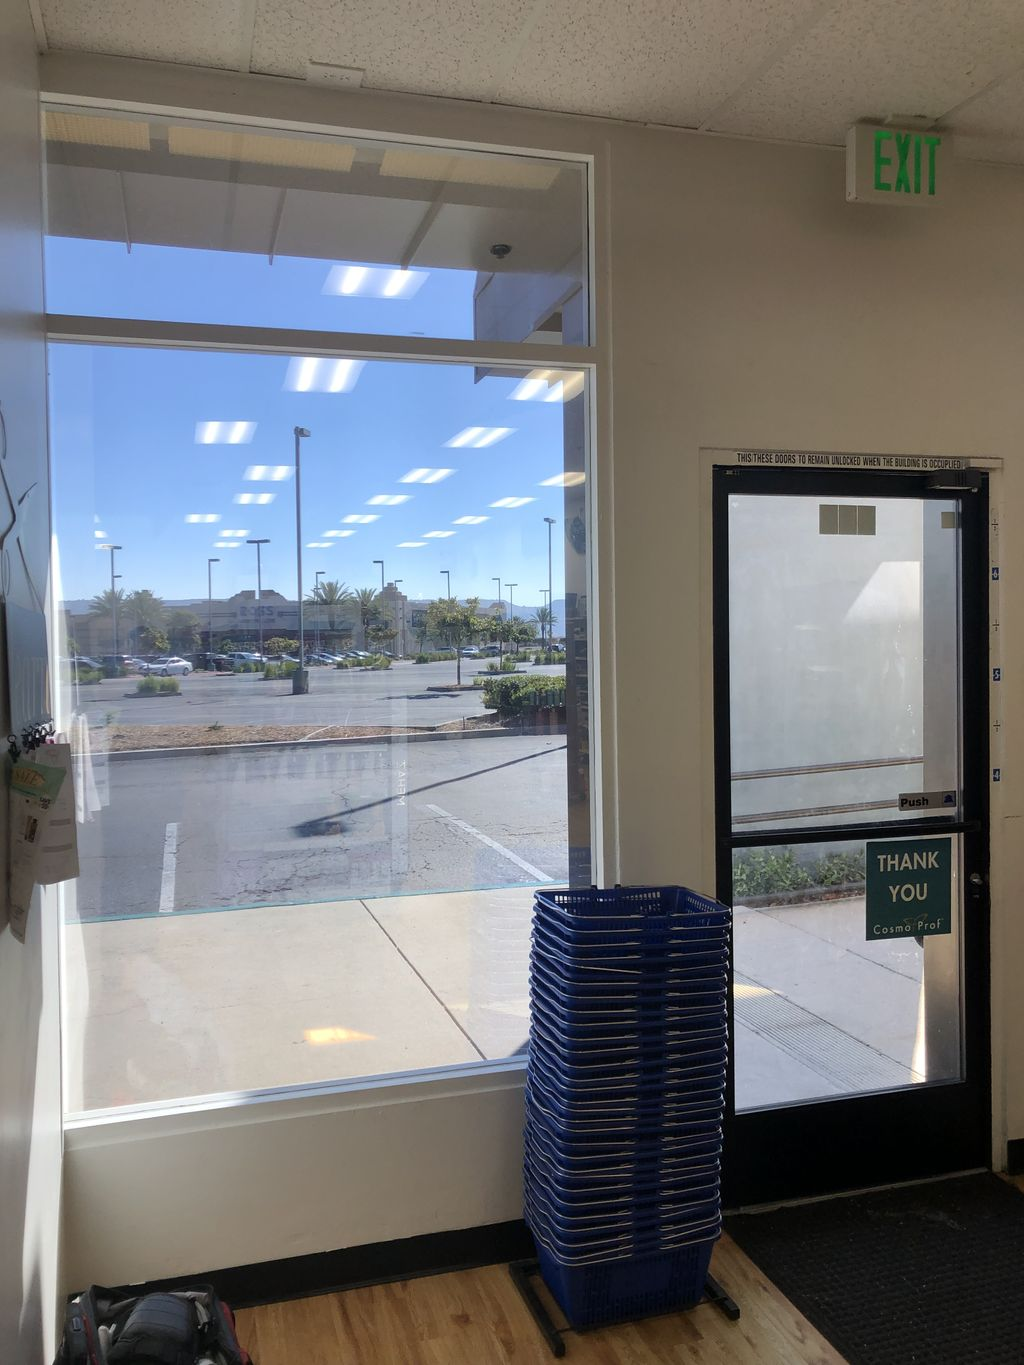 Cosmo prof - Commercial Window Tinting - Silver  20